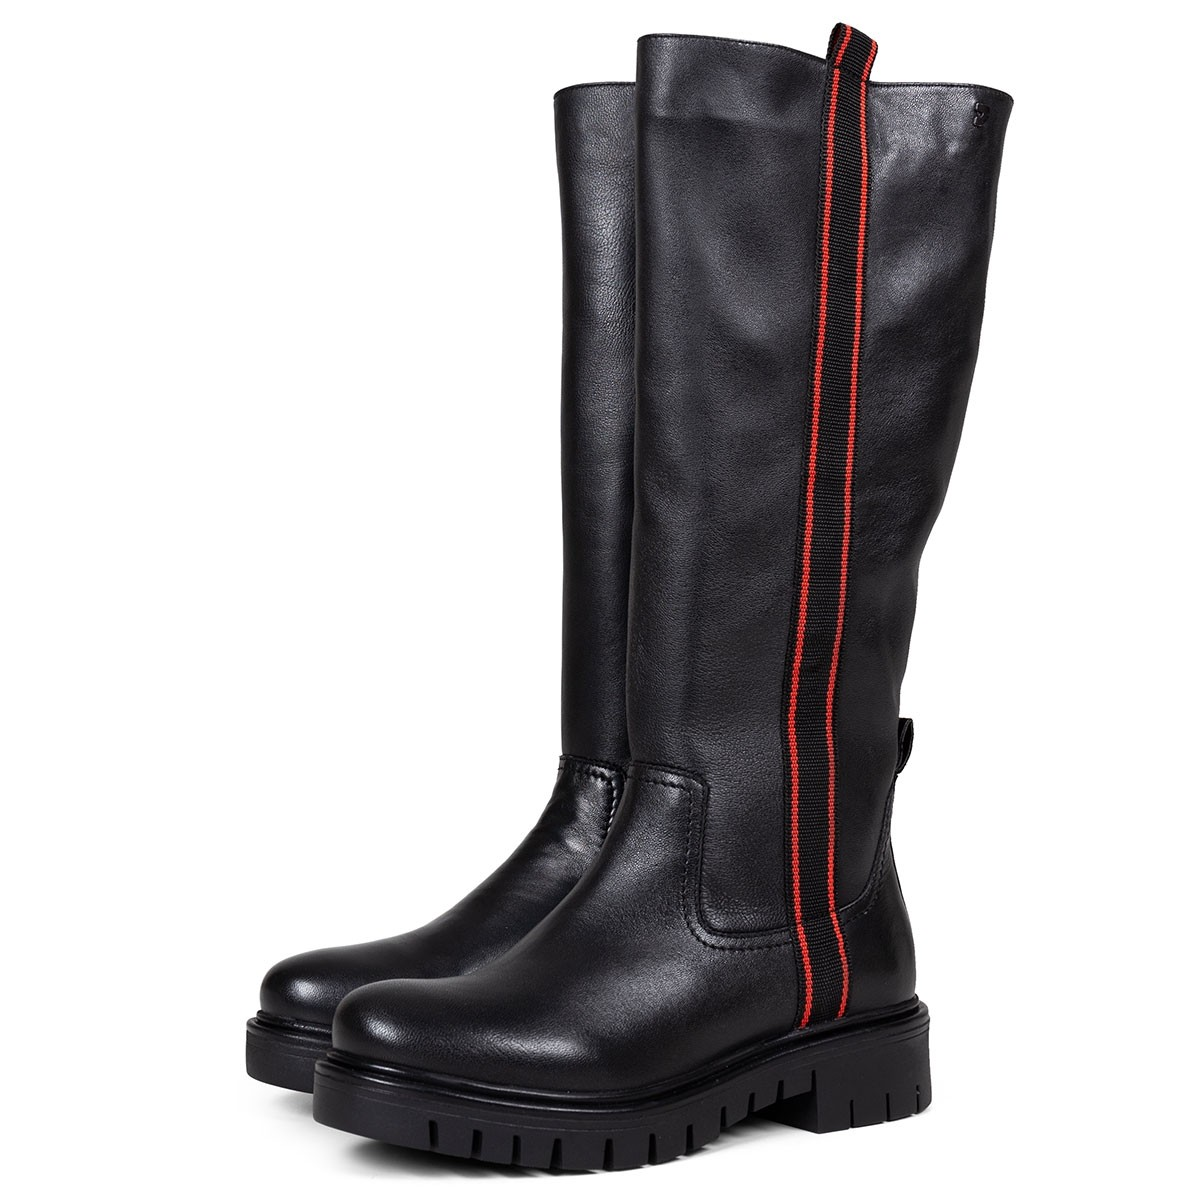 56553 Black BOOTS 3